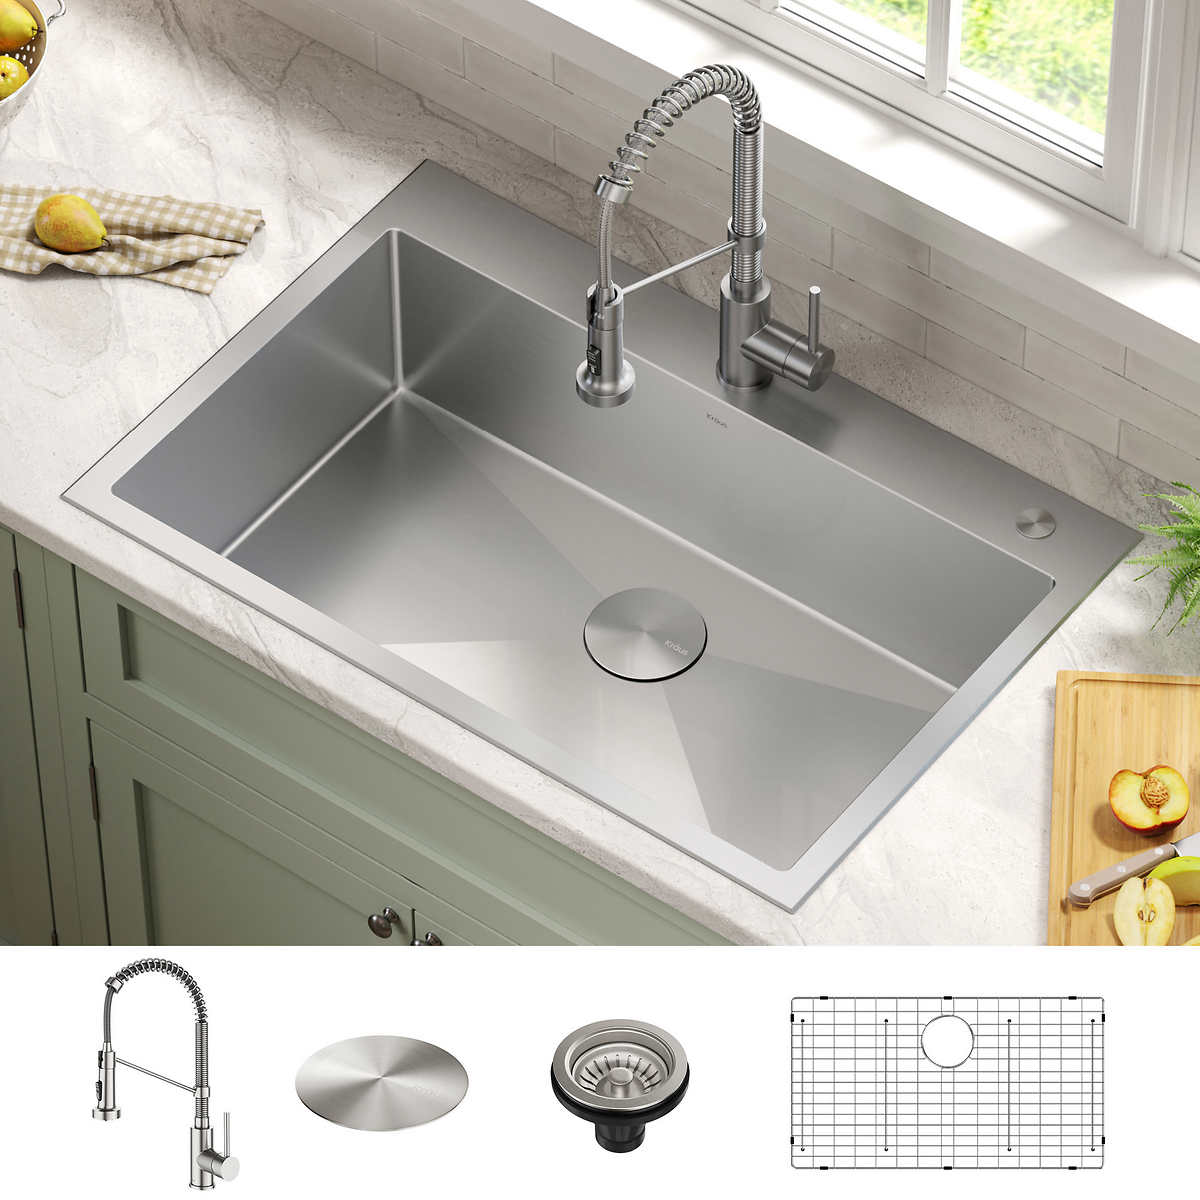 Kraus 33 Dual Mount Stainless Steel Kitchen Sink And Faucet Combo Costco